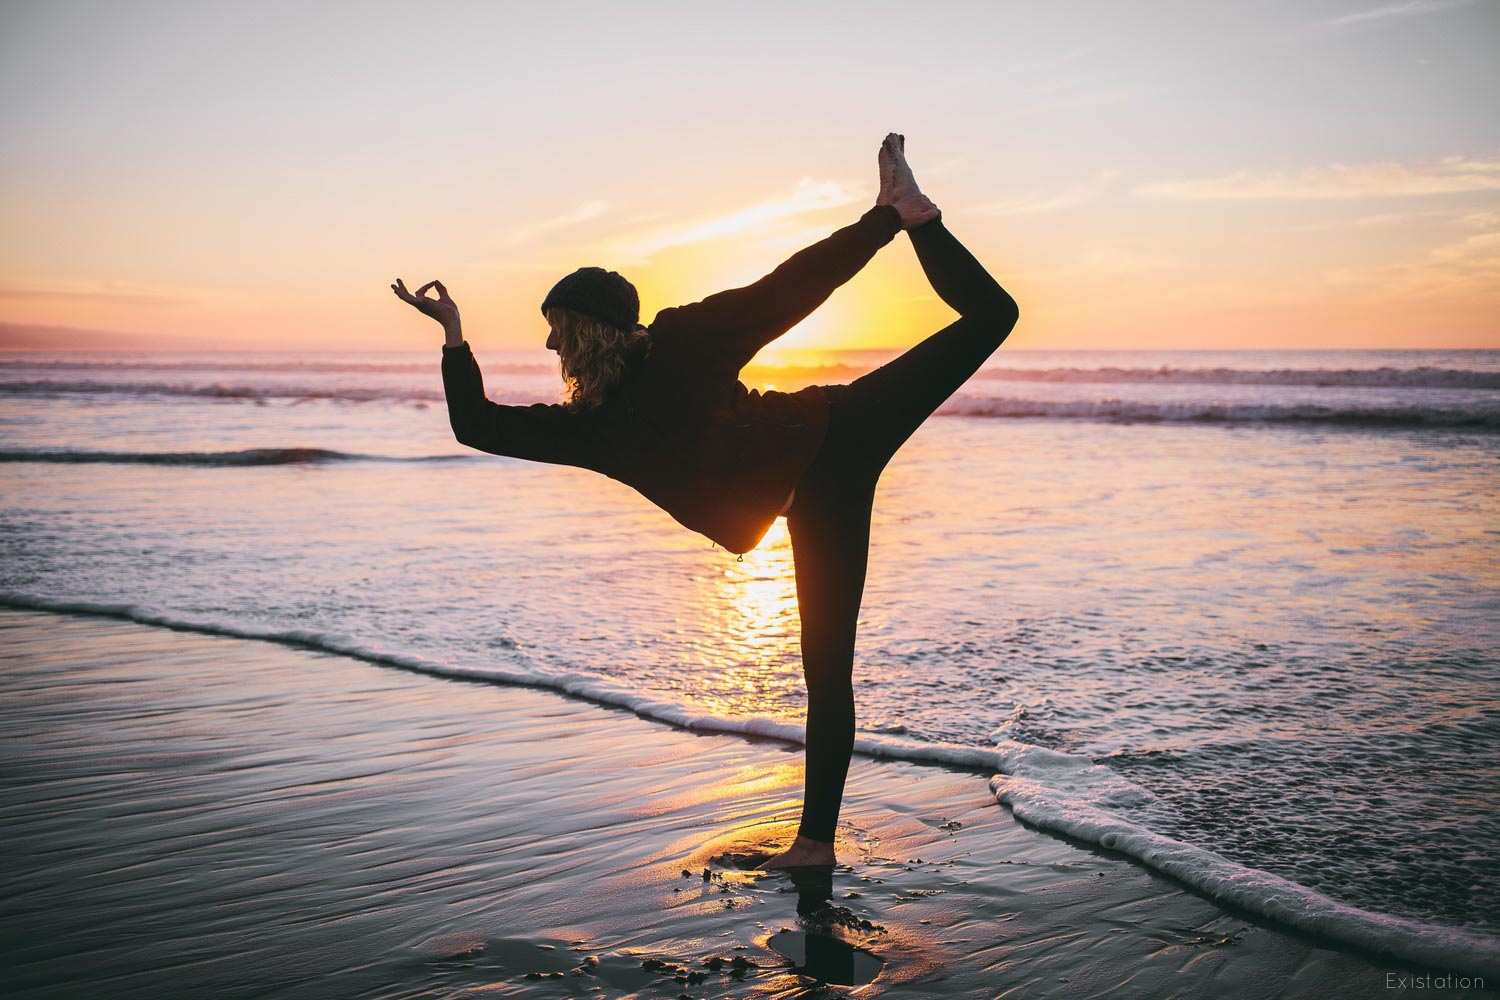 sunset+silhouette+yoga+ocean+sunset.jpg